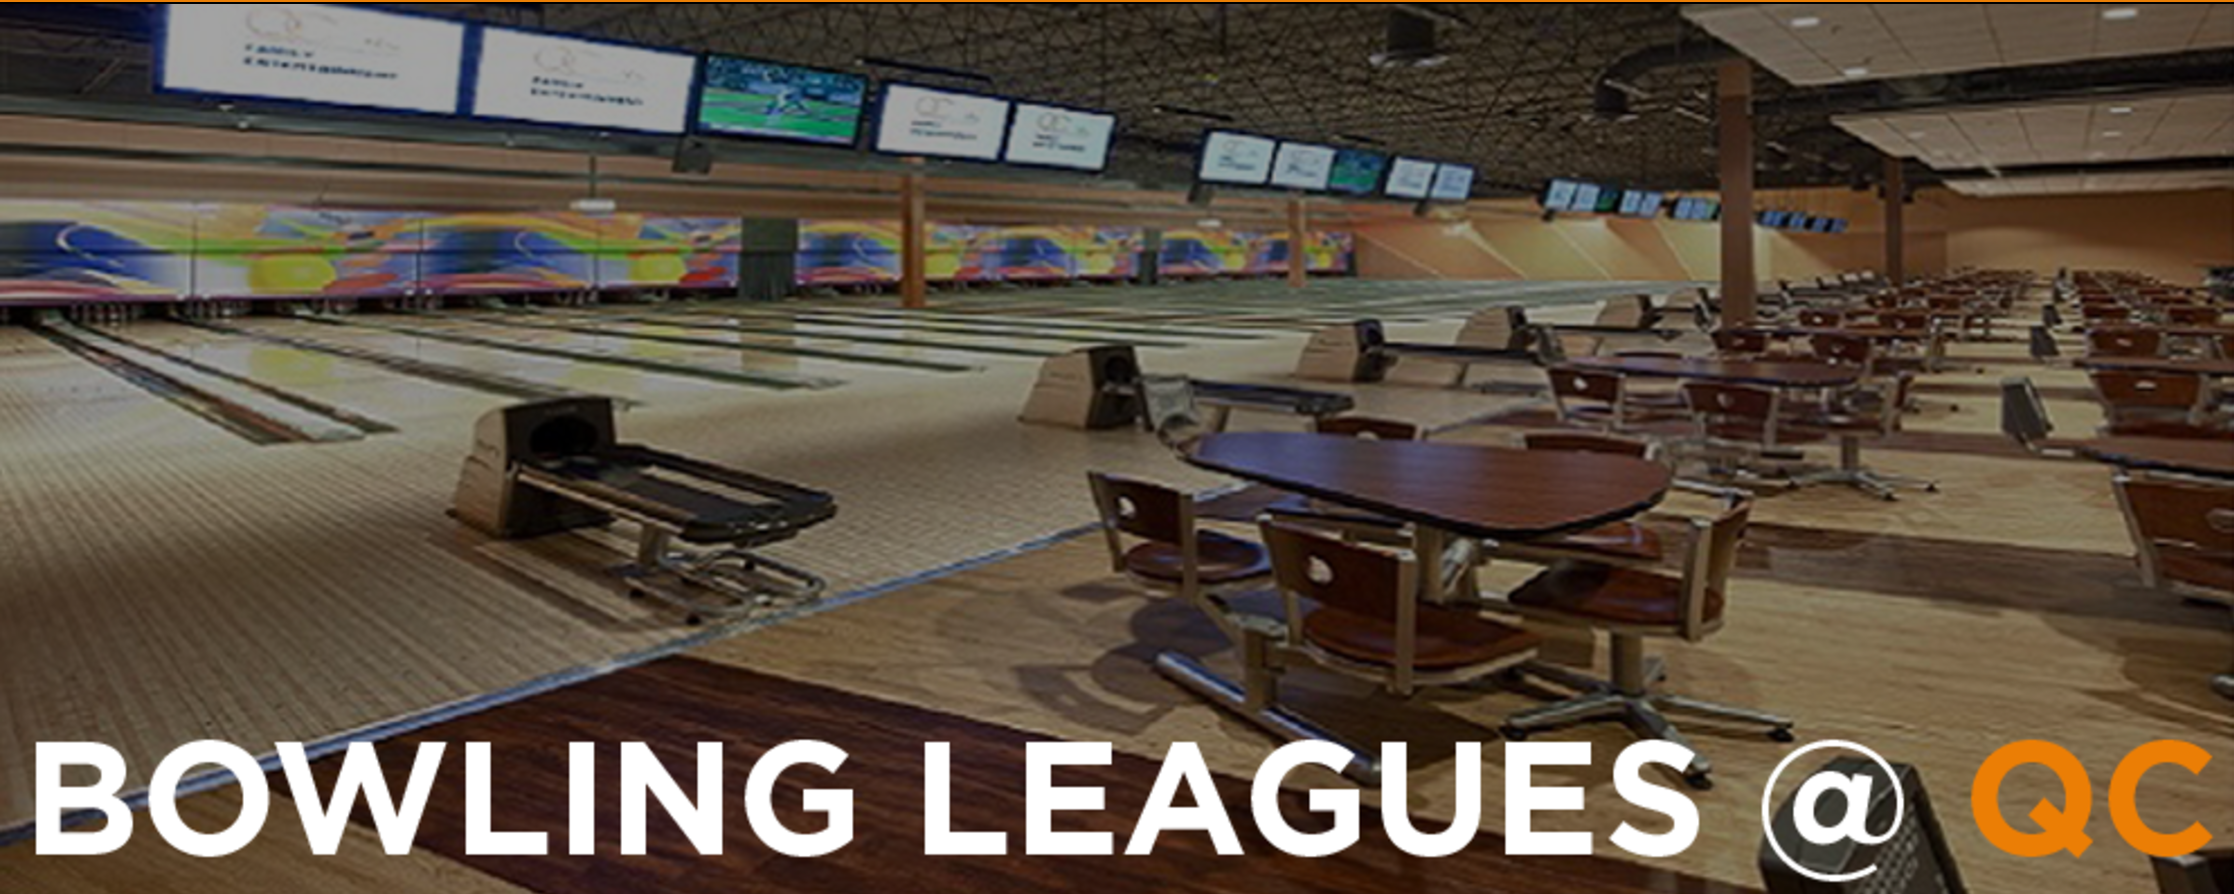 2017-09-04 22_02_33-Join The QC Bowling League _ Moline, IL Bowling Leagues.png